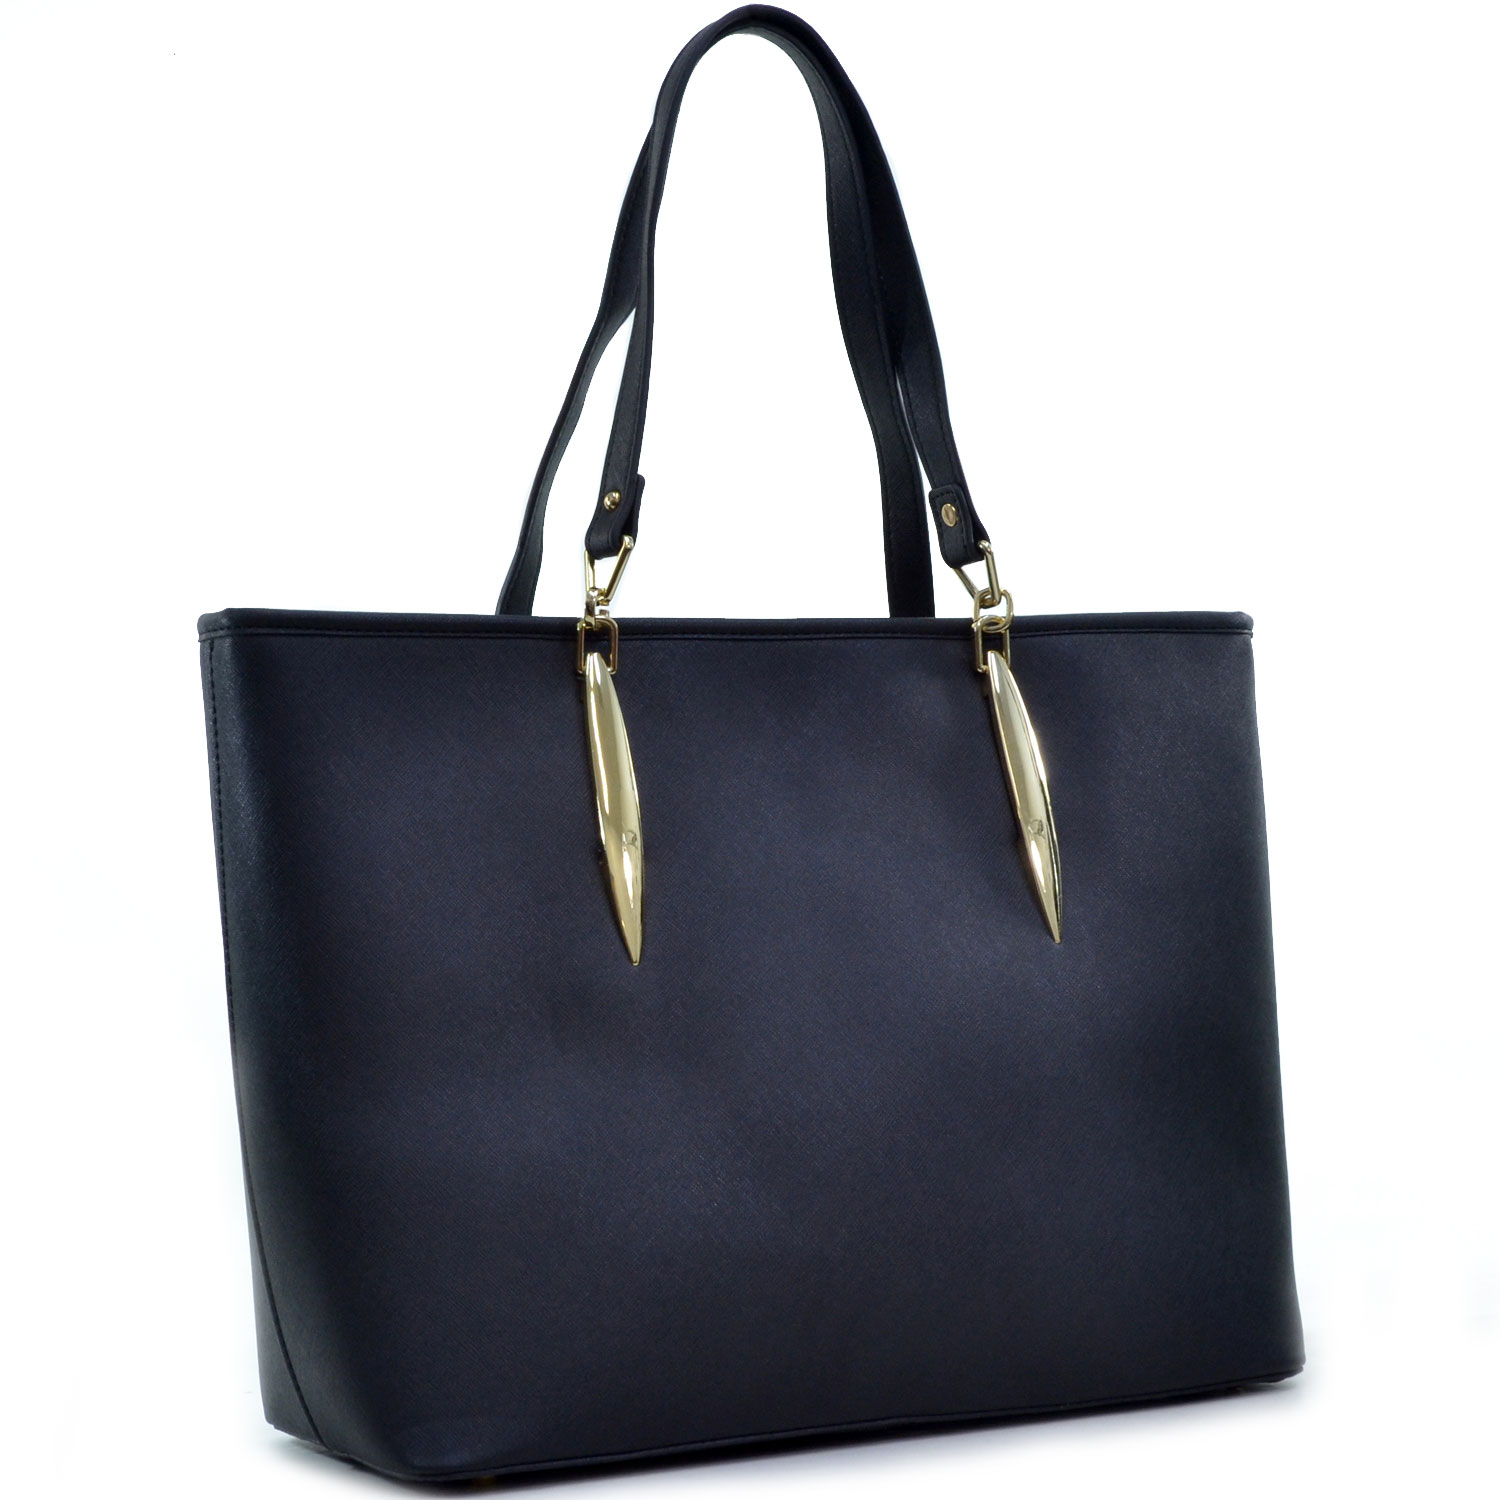 Dasein® Large Saffiano Faux Leather Tote with Minimal Accent Hardware